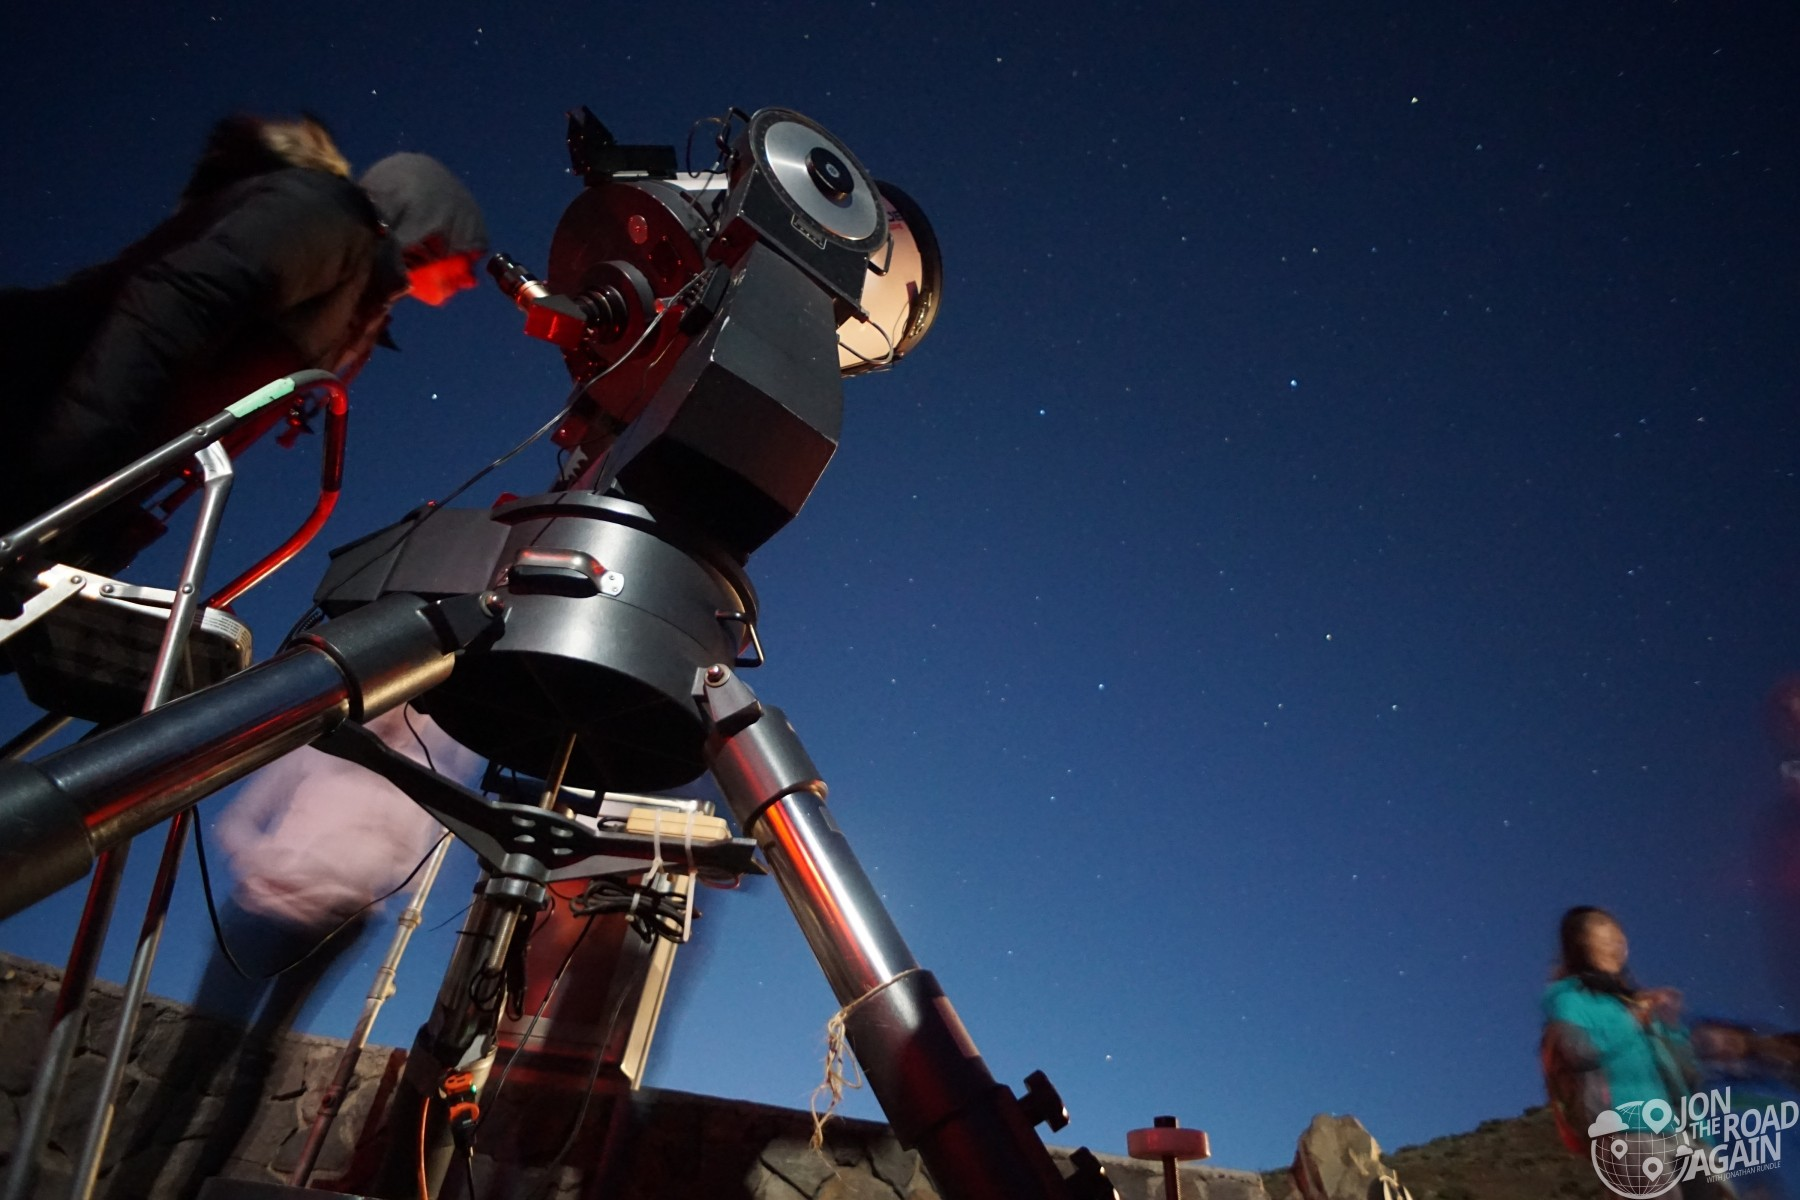 Looking through a telescope at Mauna Kea